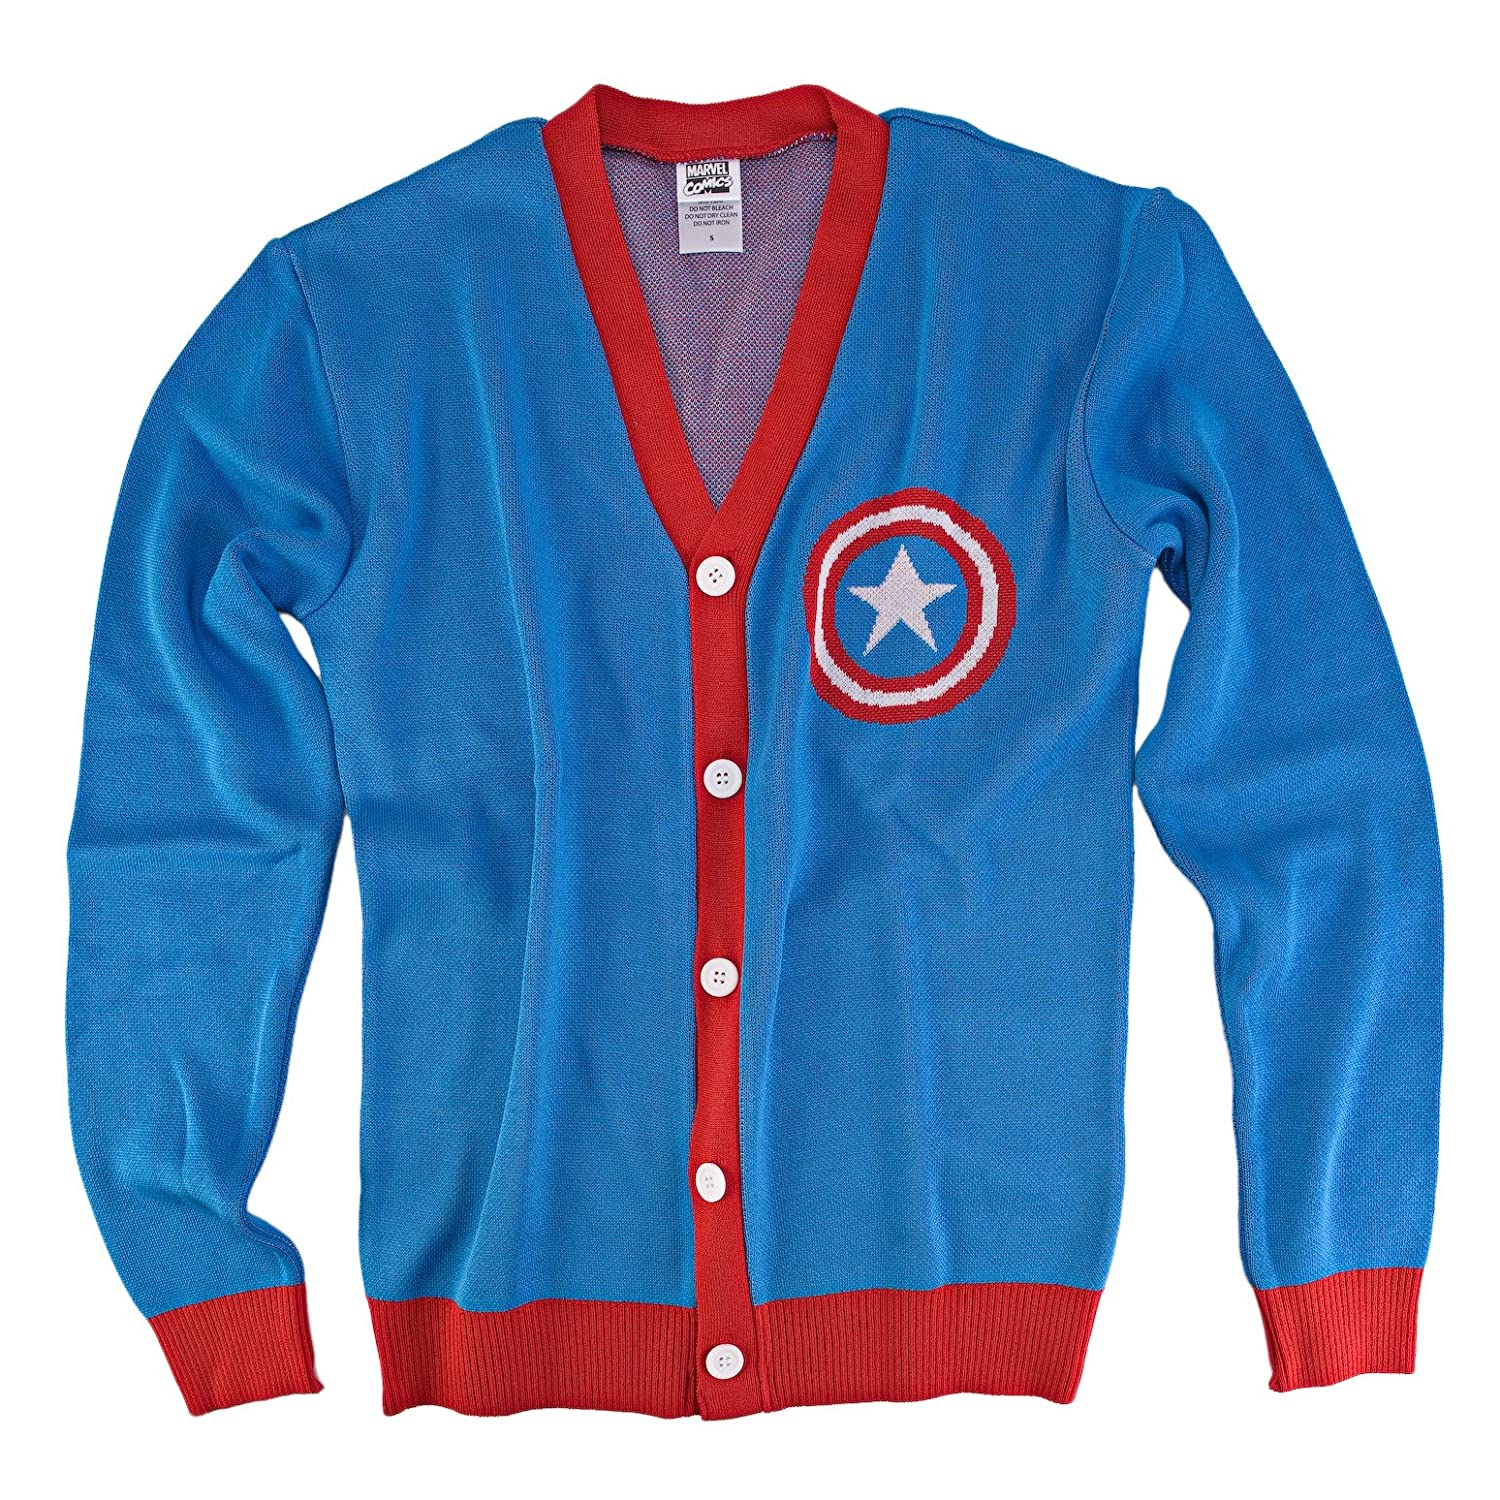 S Marvel Captain America Button Up Cardigan Sweater